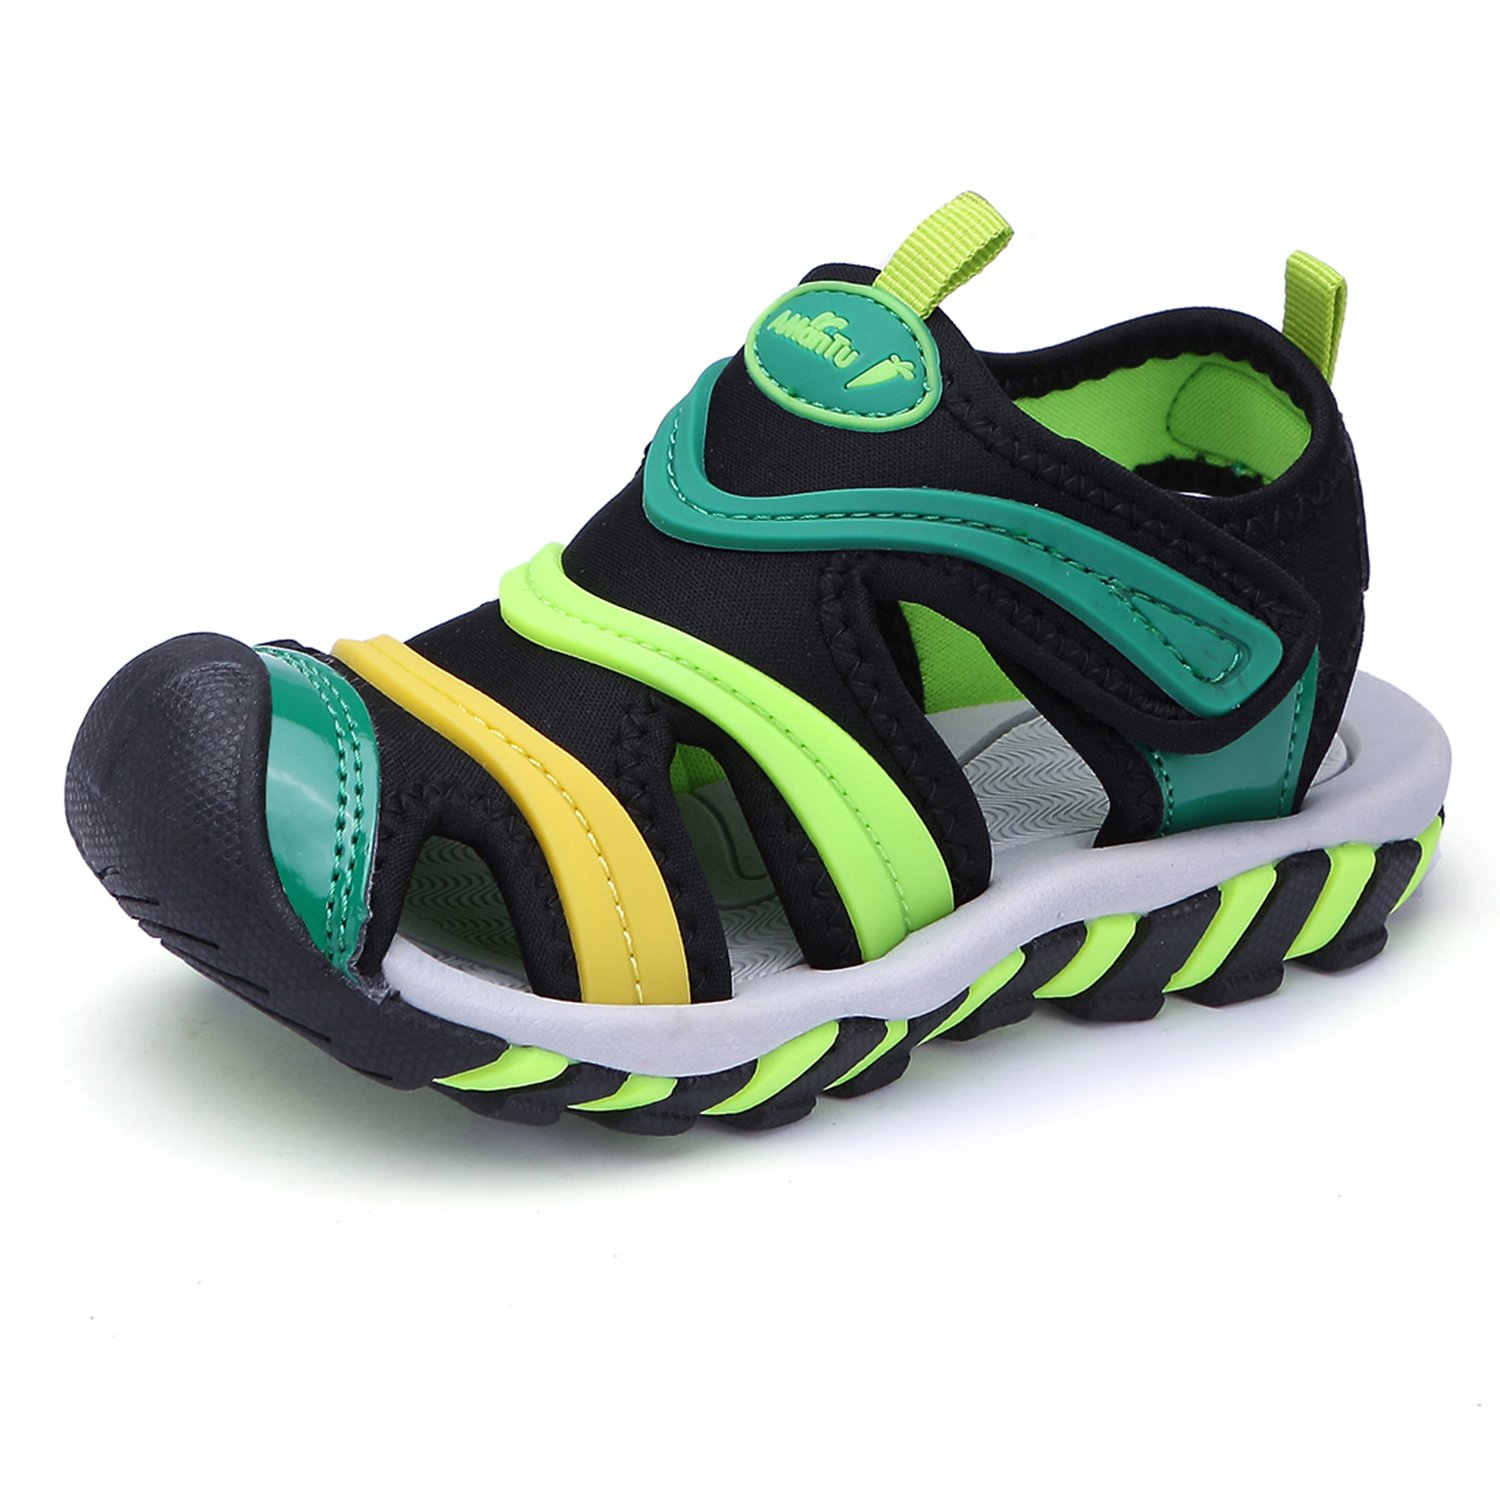 BTDREAM Boy's and Girl's Sports Sandals Breathable Closed-Toe Summer Outdoor Velcro Athletic Beach Shoes Green Size 33